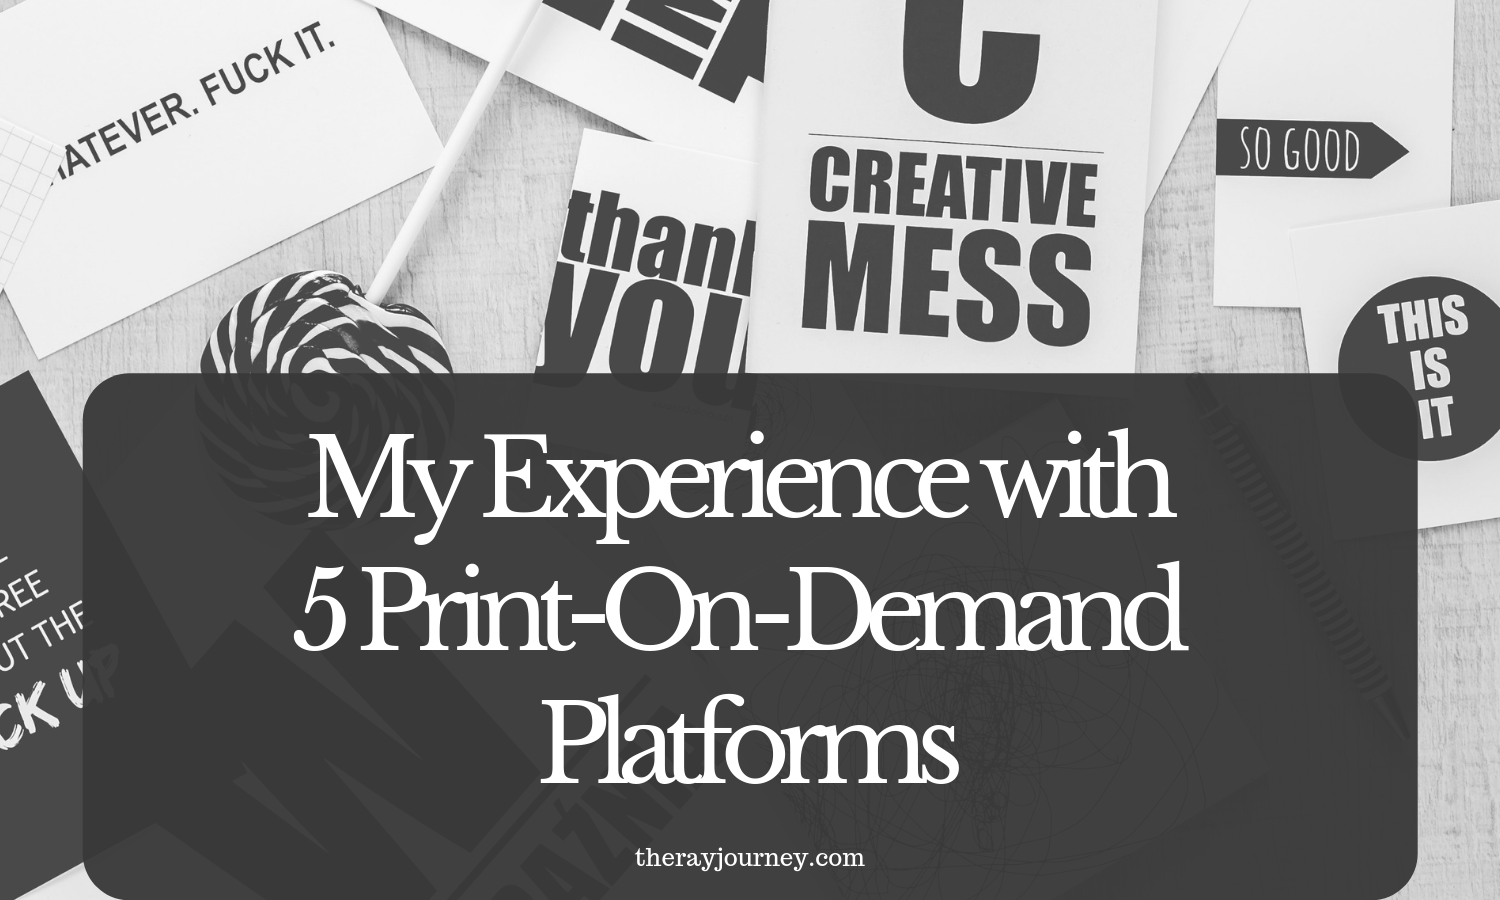 My experience with 5 print on demand platforms: zazzle, redbubble, cafepress, threadless, printful